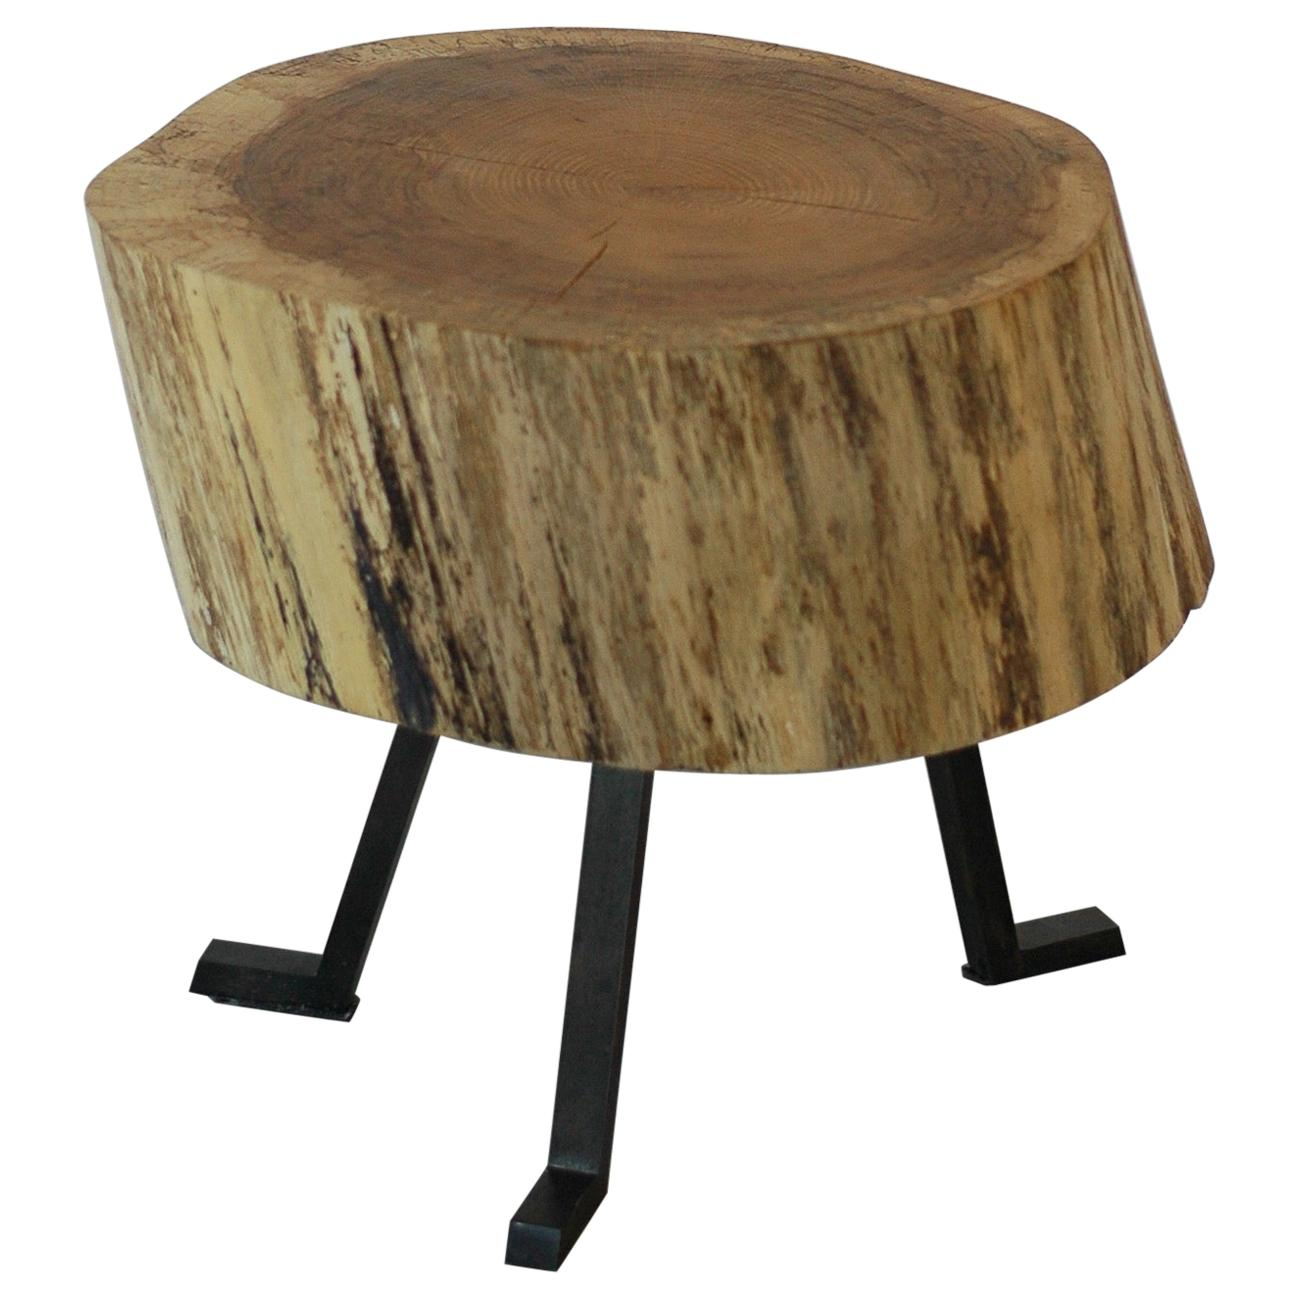 Live Edge Round Side Table Solid Oak with Black Patina Steel Legs